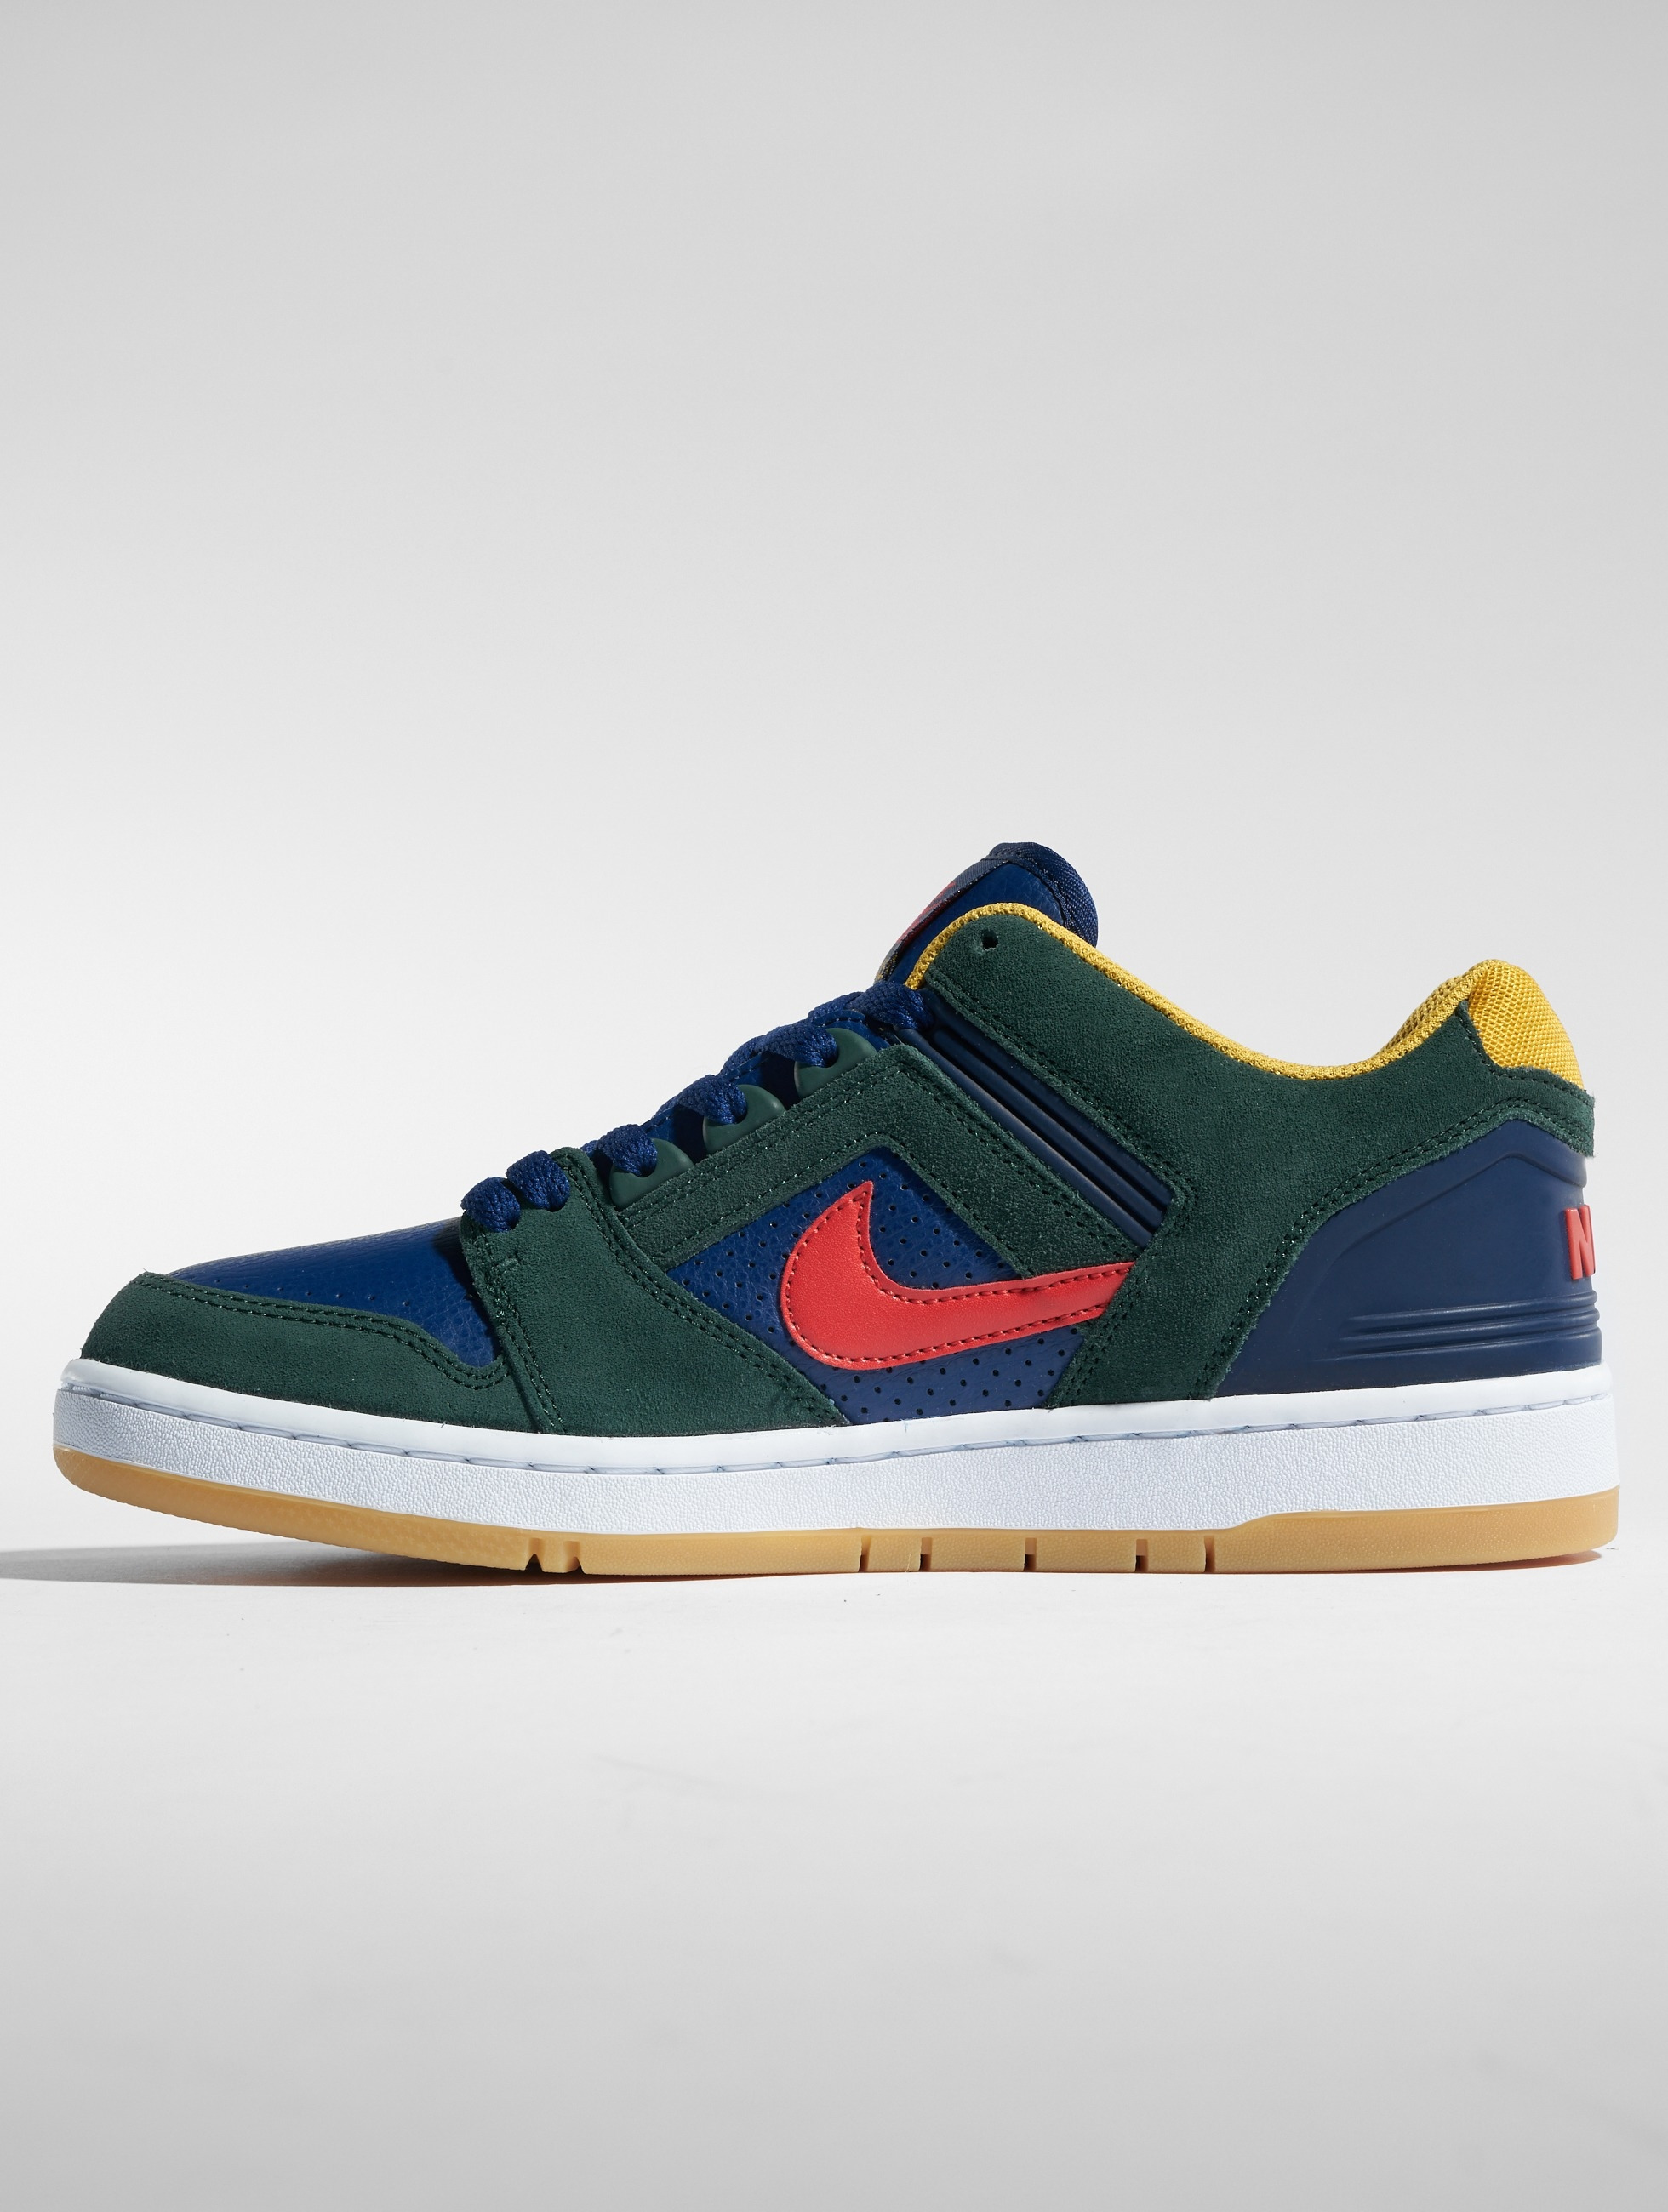 e7cf20c1bf8 Nike SB schoen / sneaker SB Air Force II Low in groen 500802